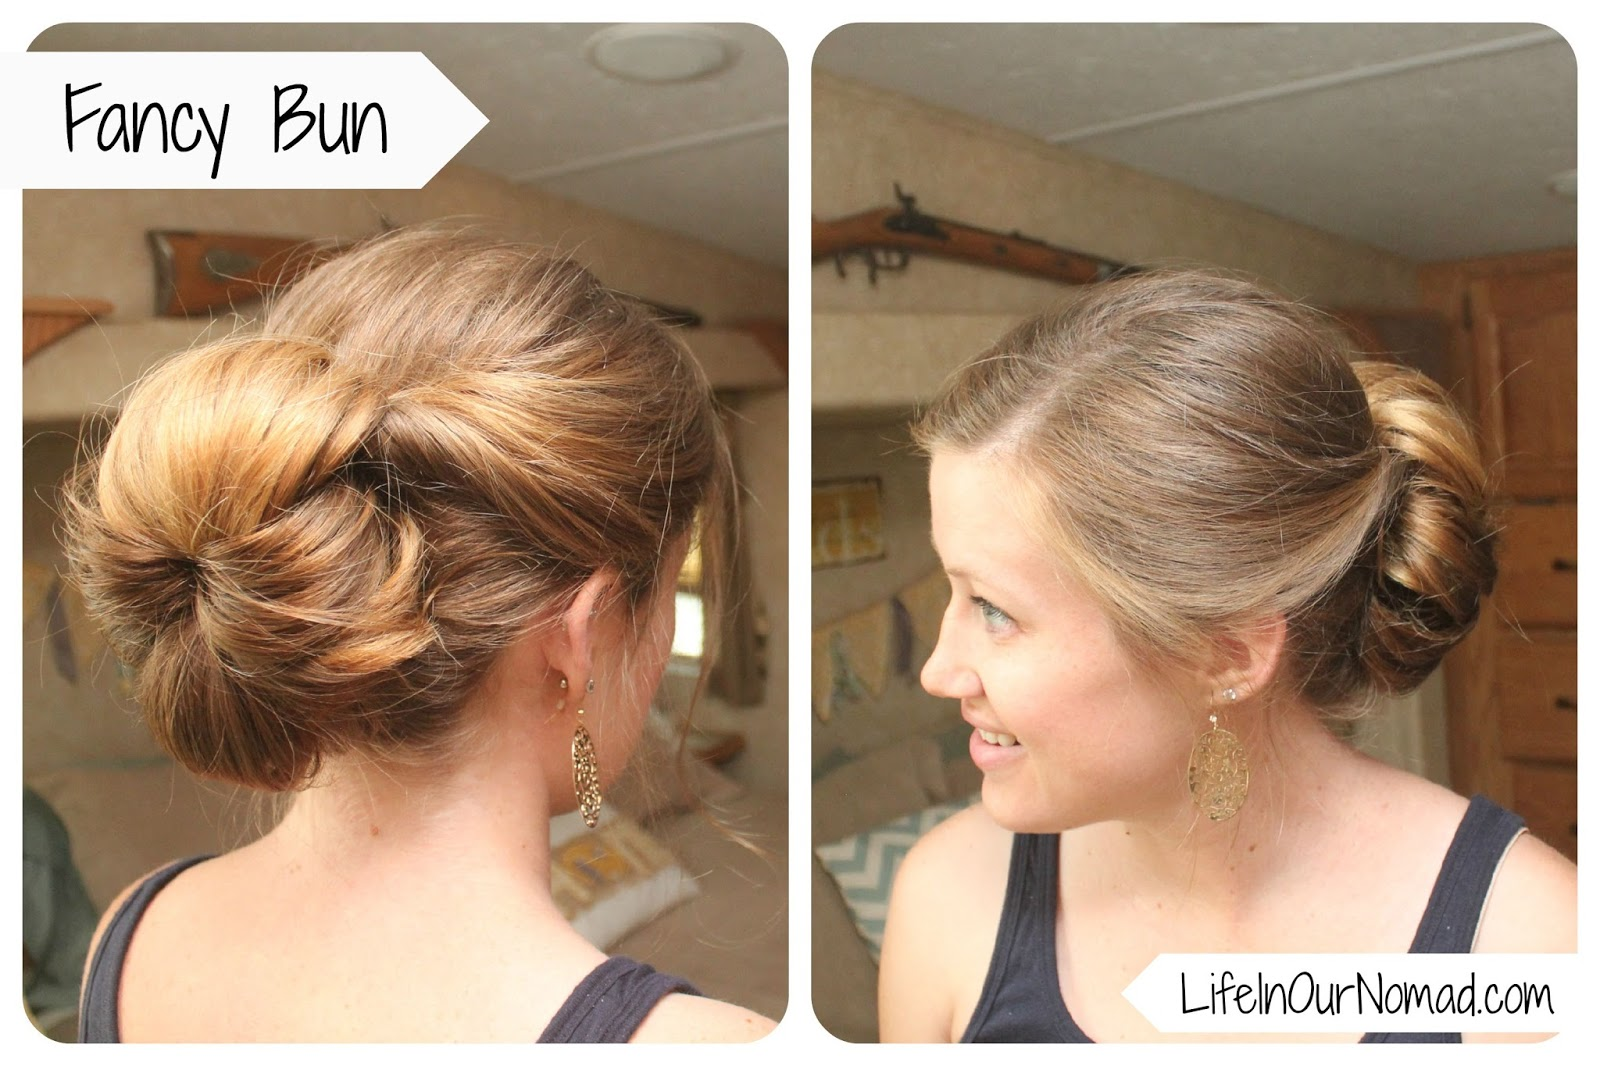 Incredible Glamp Laugh Love Fancy Bun Day 5 Of Hairstyles For Moms Hairstyles For Women Draintrainus